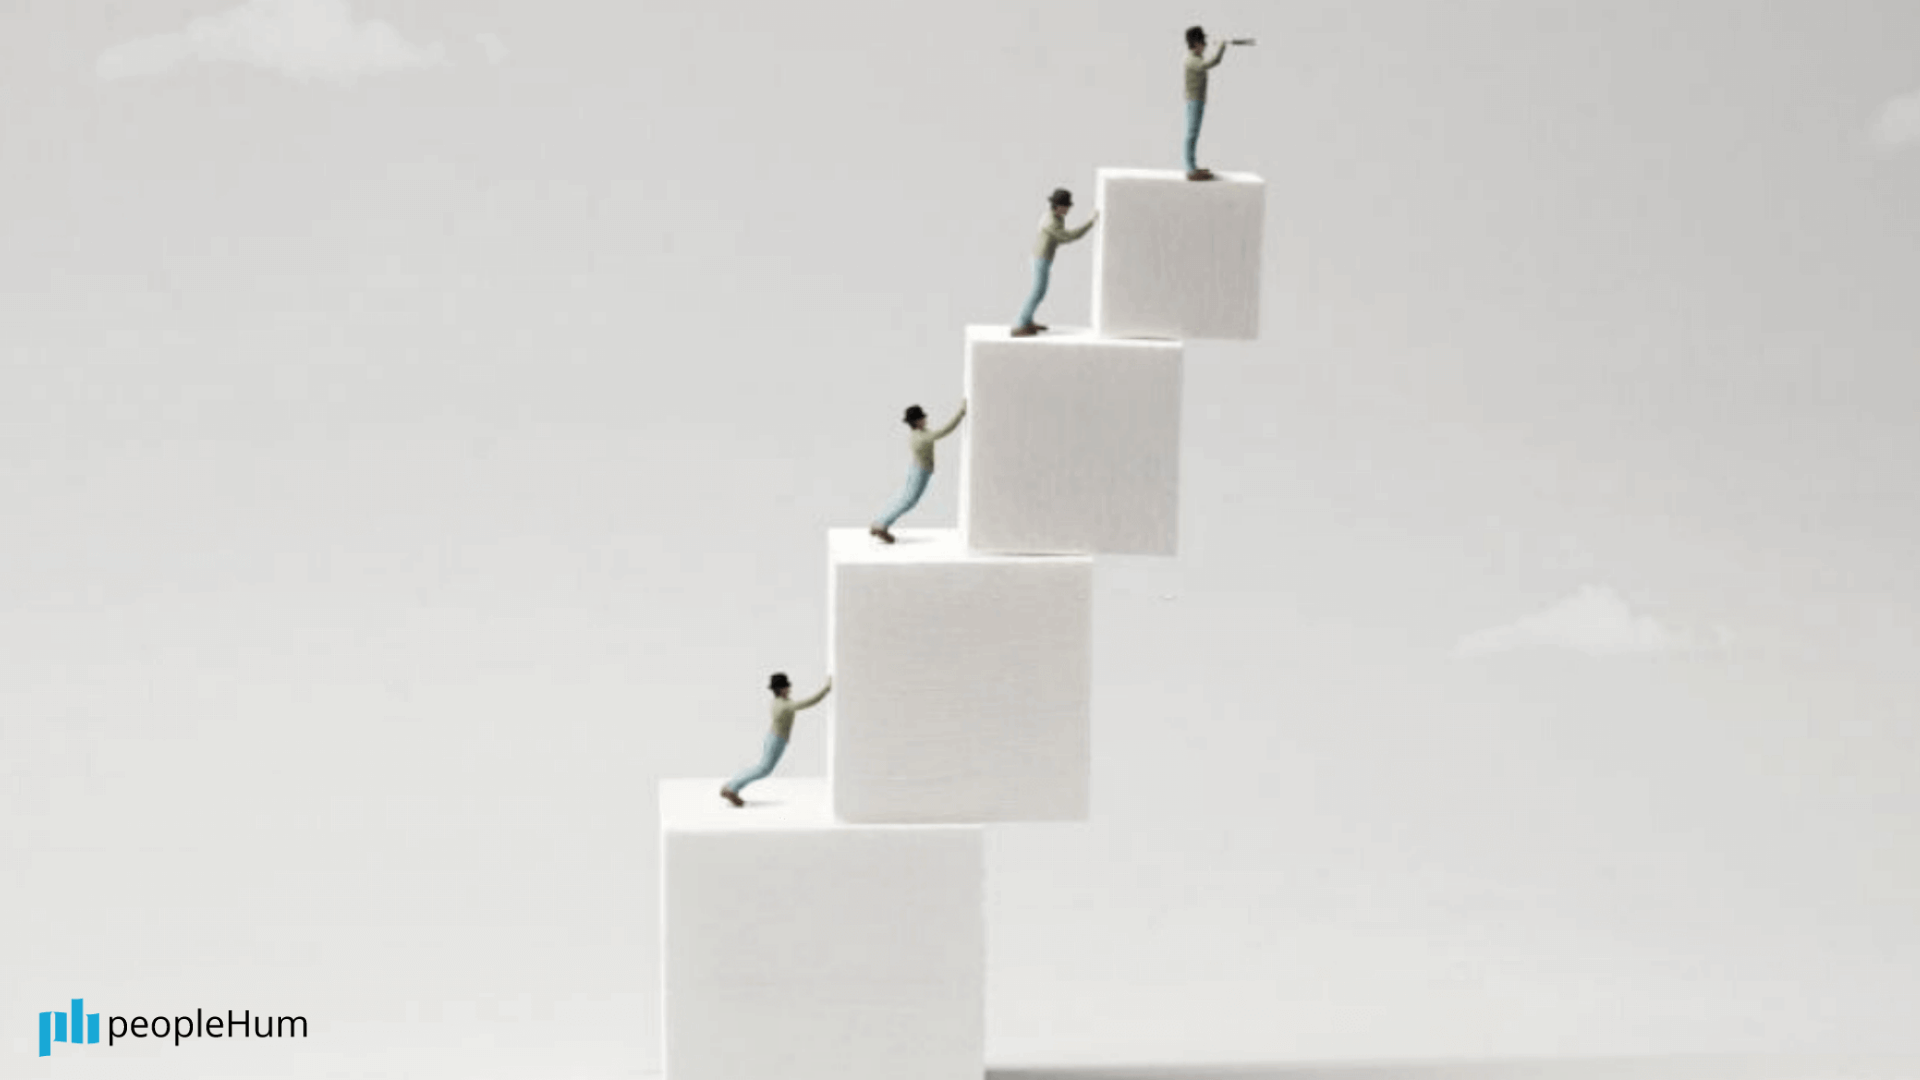 The death of hierarchy - Giving rise to a new organizational structure